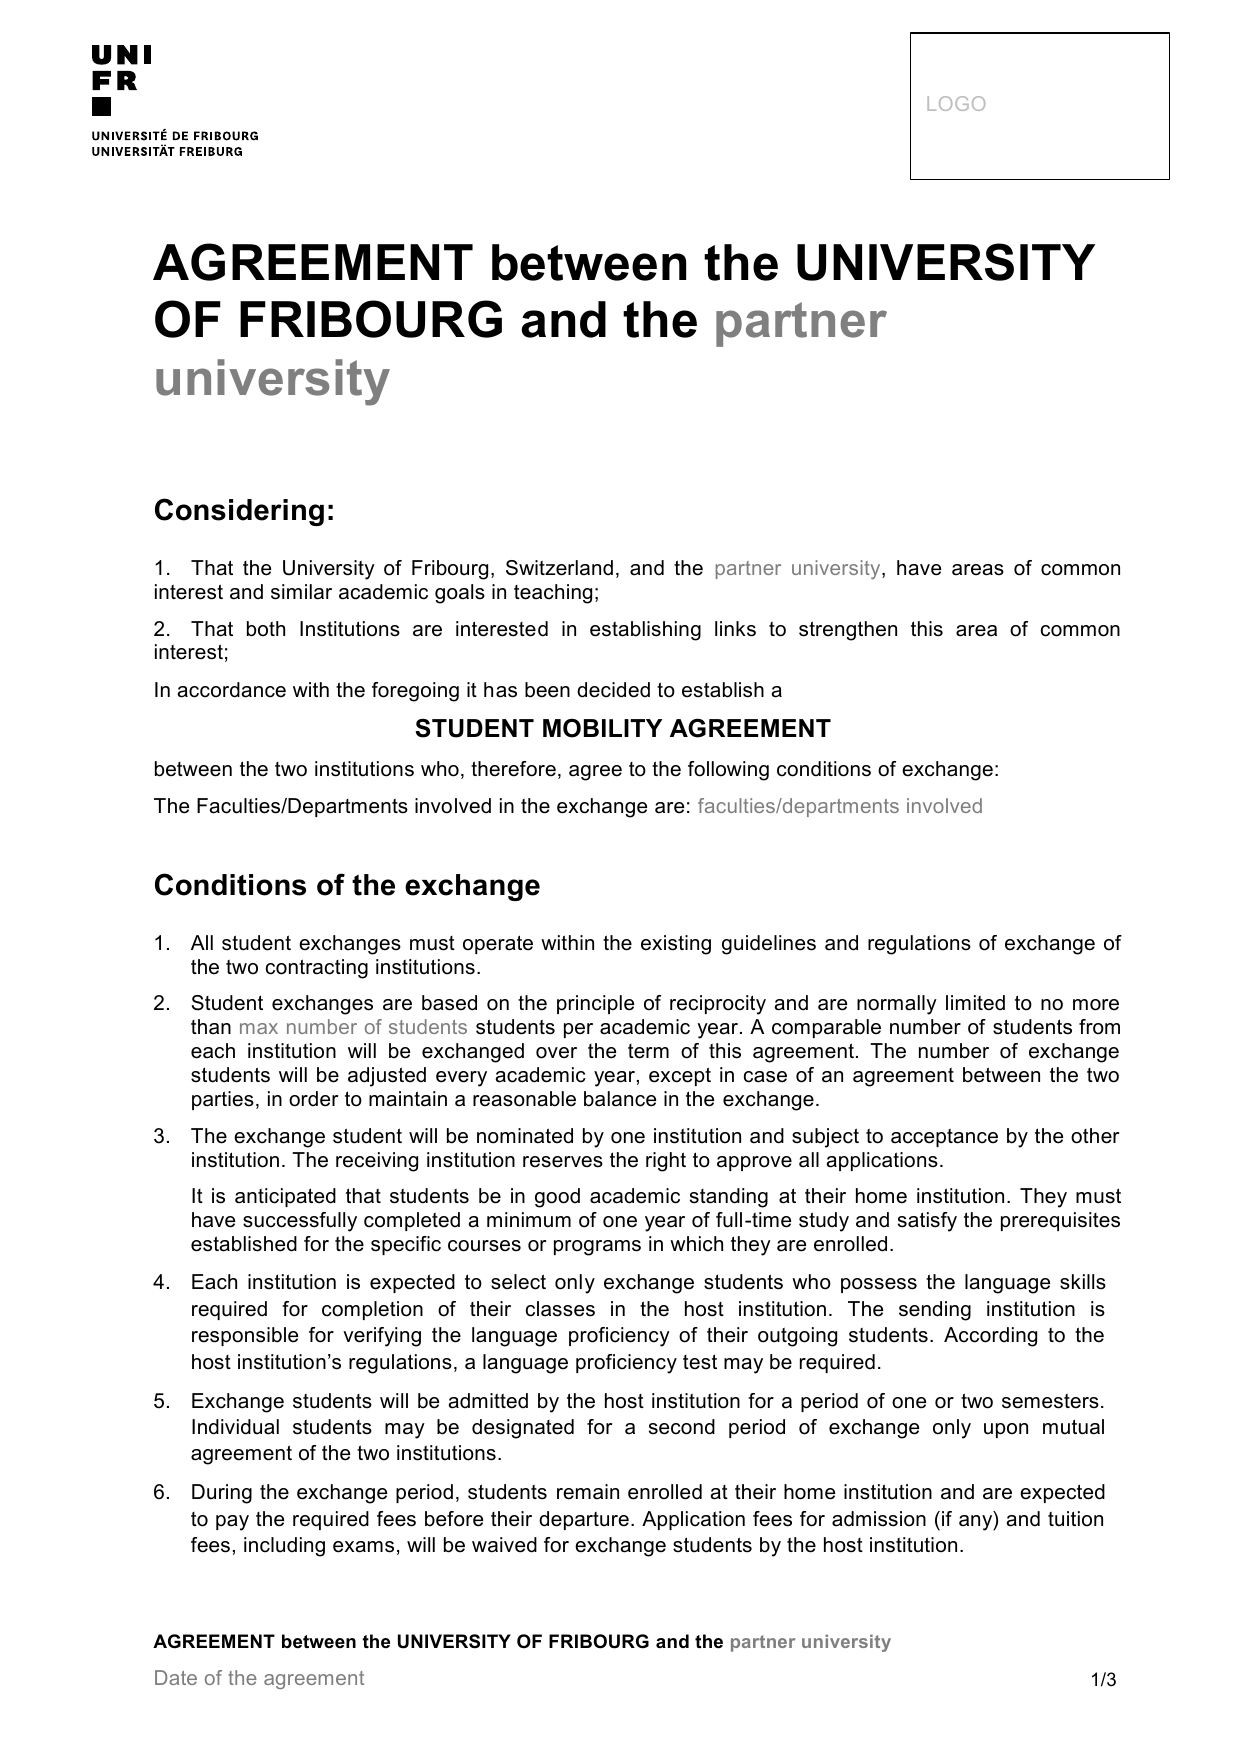 Agreement Between The University Of Fribourg And